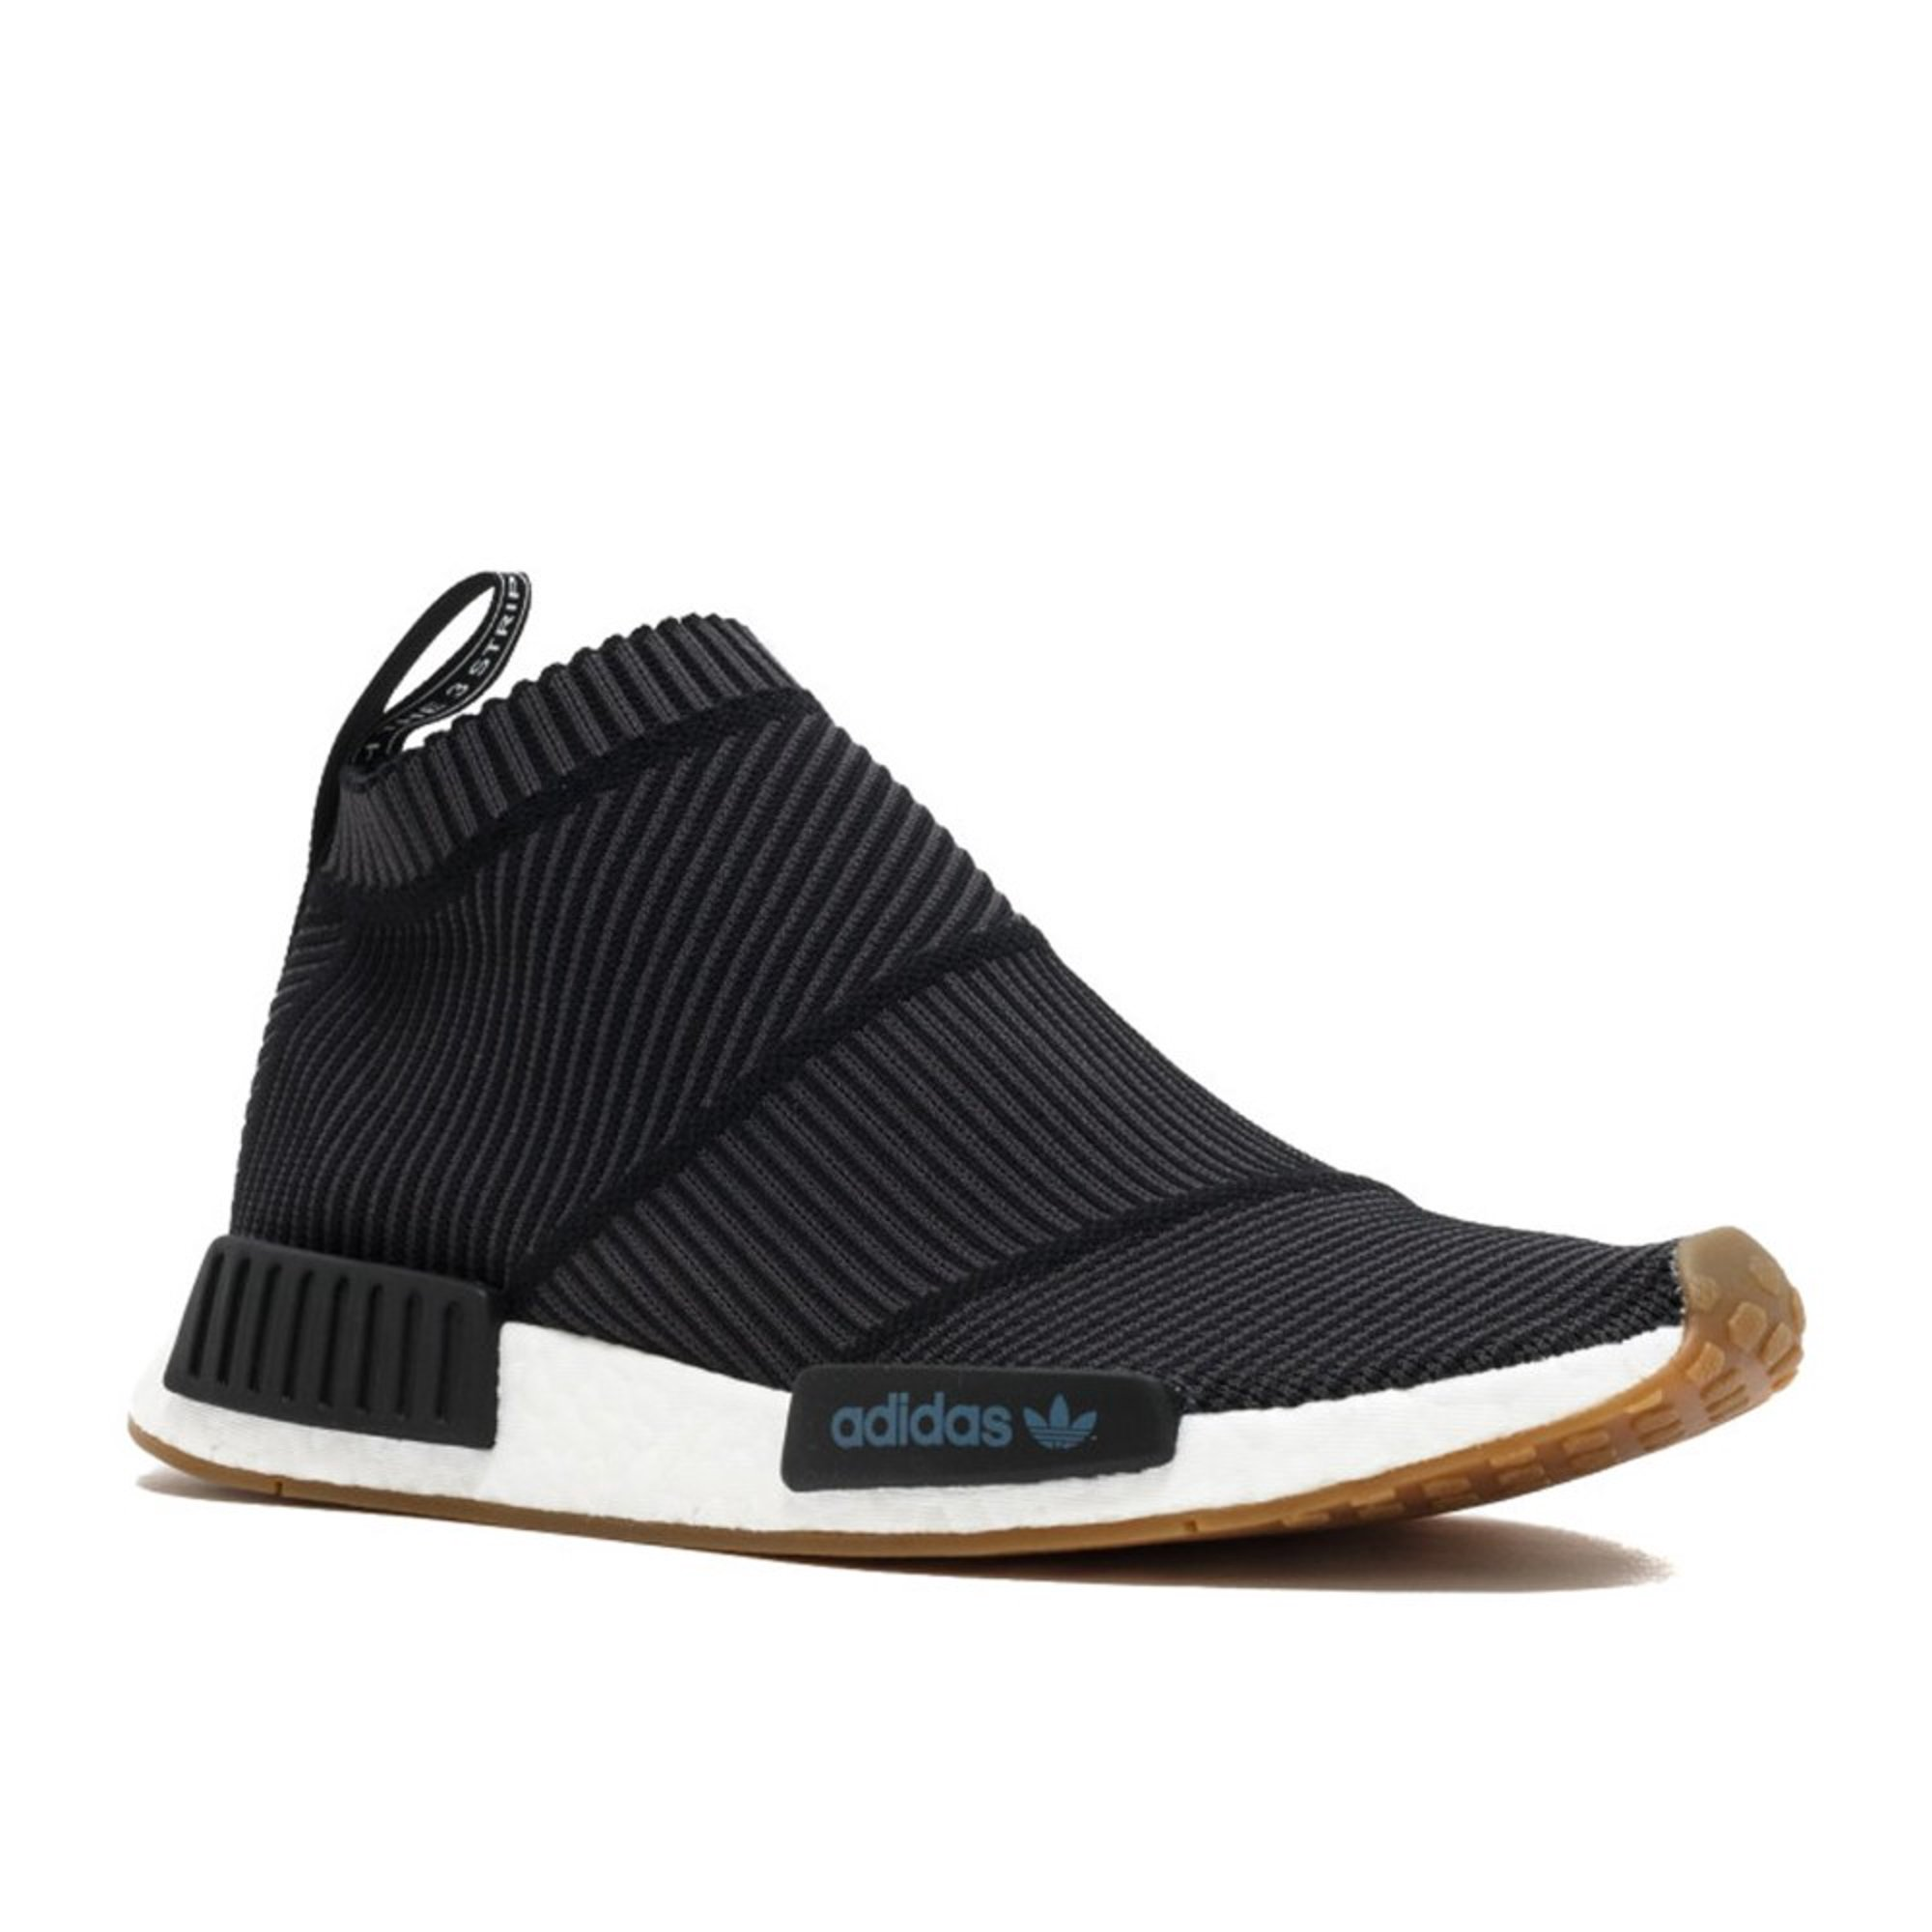 Shop for and Buy Sneakers Mens Adidas Nmd Cs1 Pk 'Gum Bottom